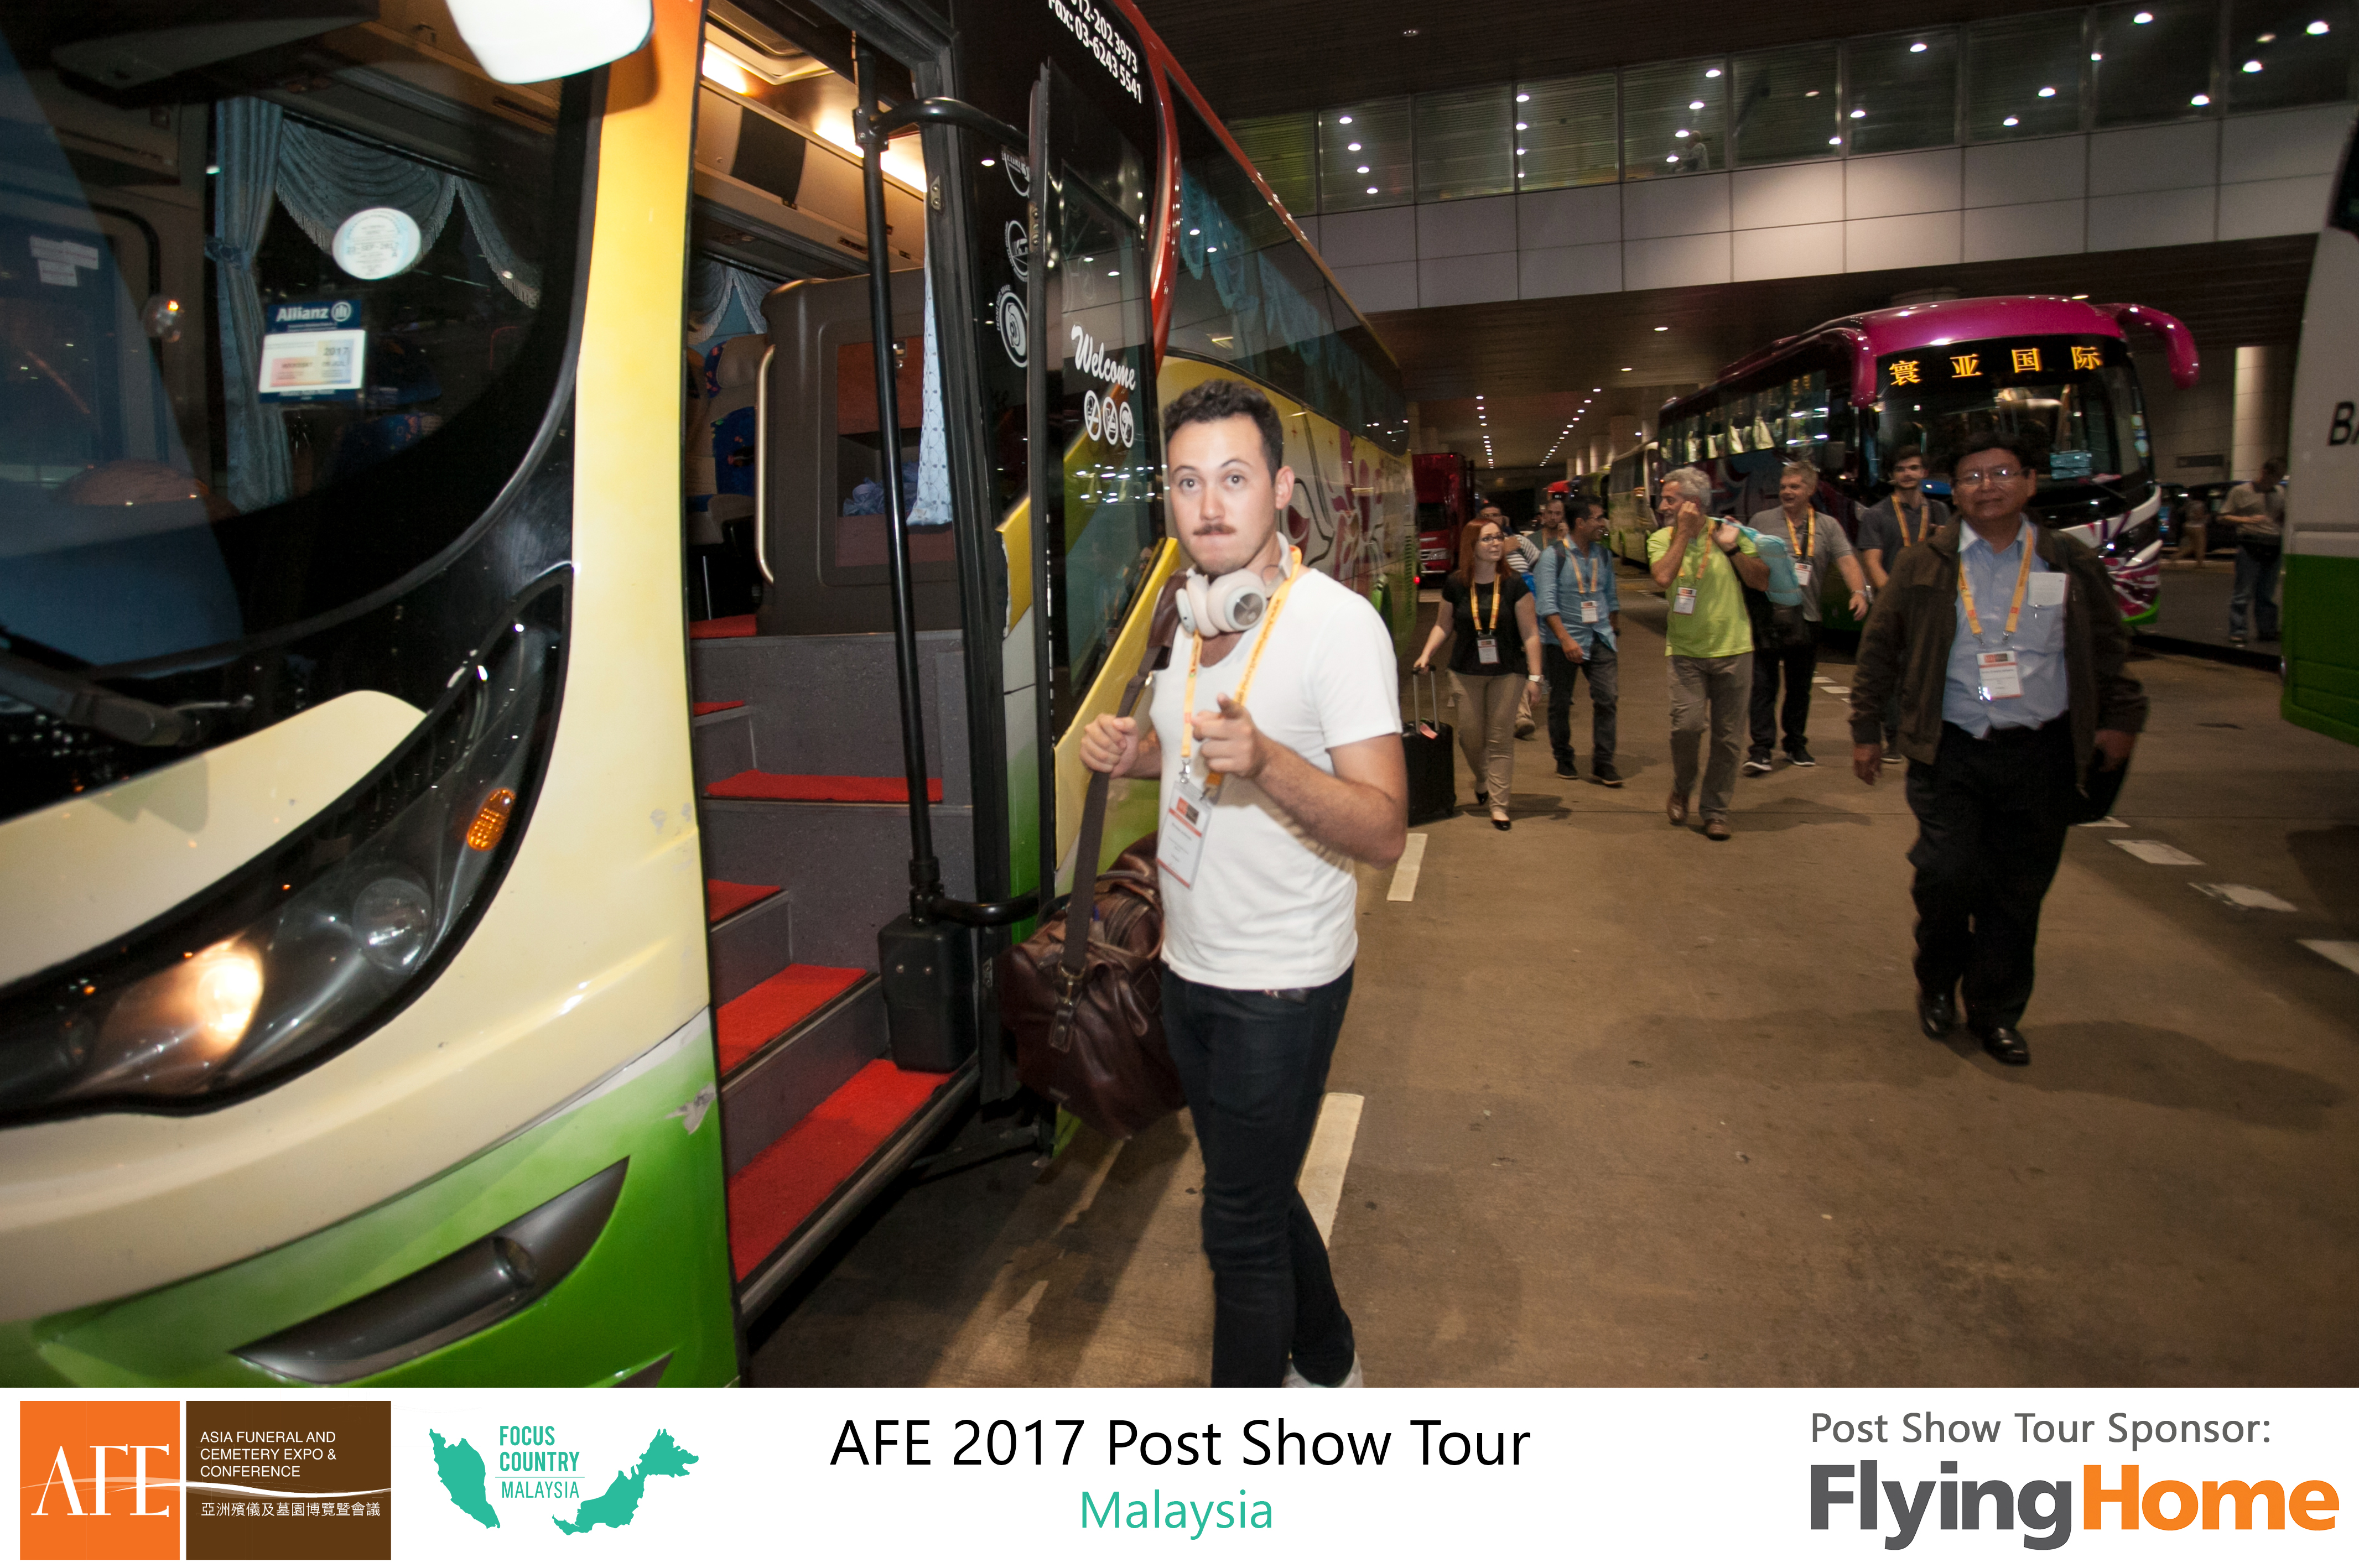 AFE Post Show Tour 2017 Day 1 - 35